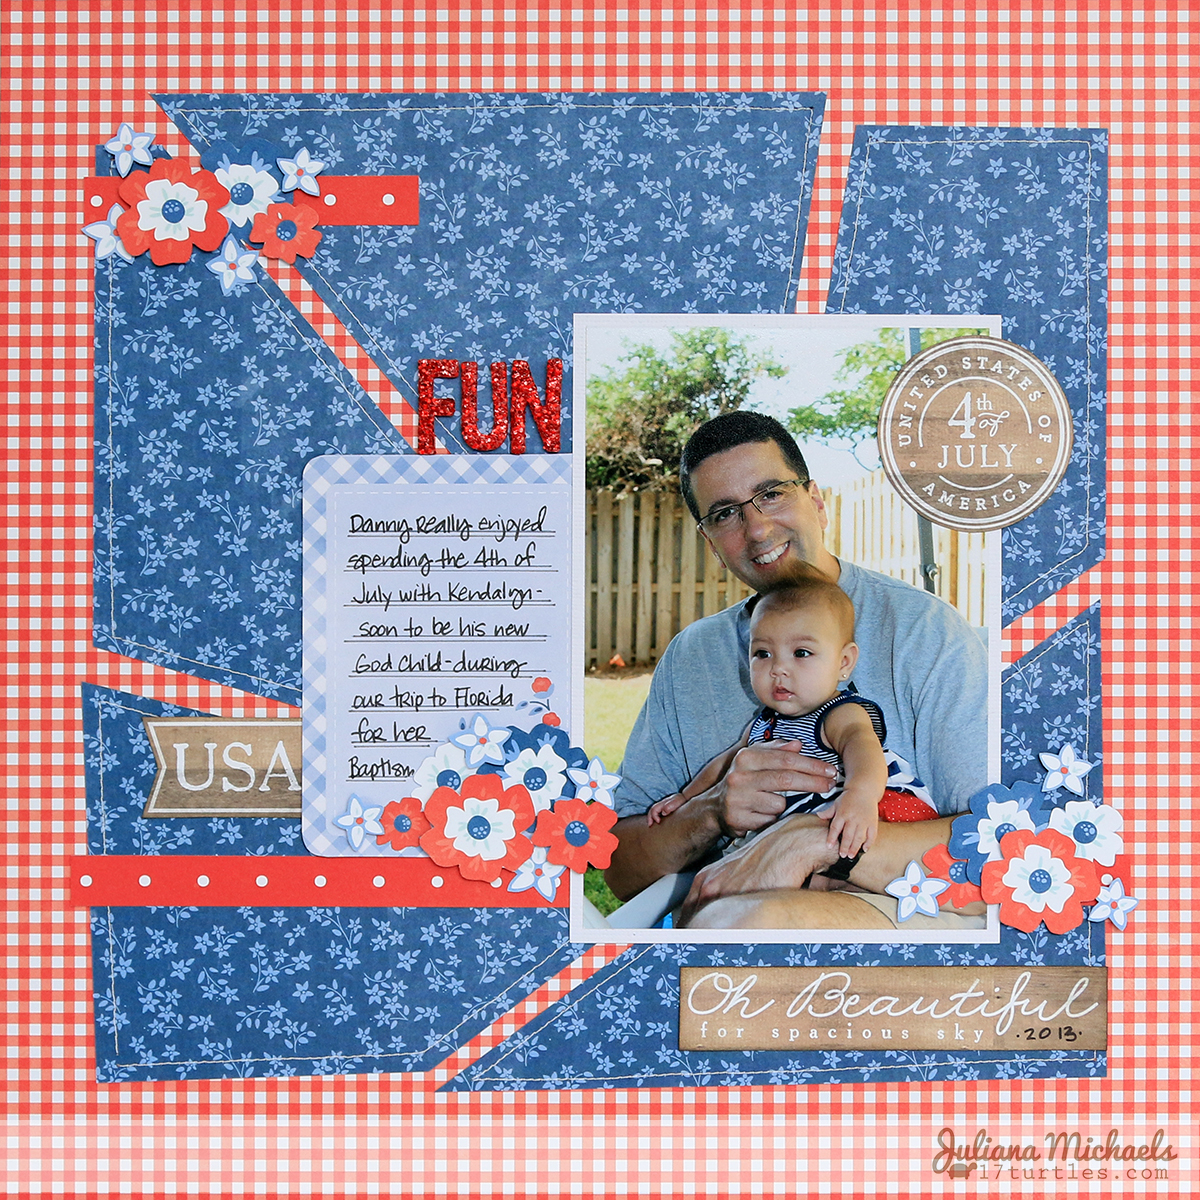 4th of July Fun Scrapbook Page Juliana Michaels Pebbles Americana